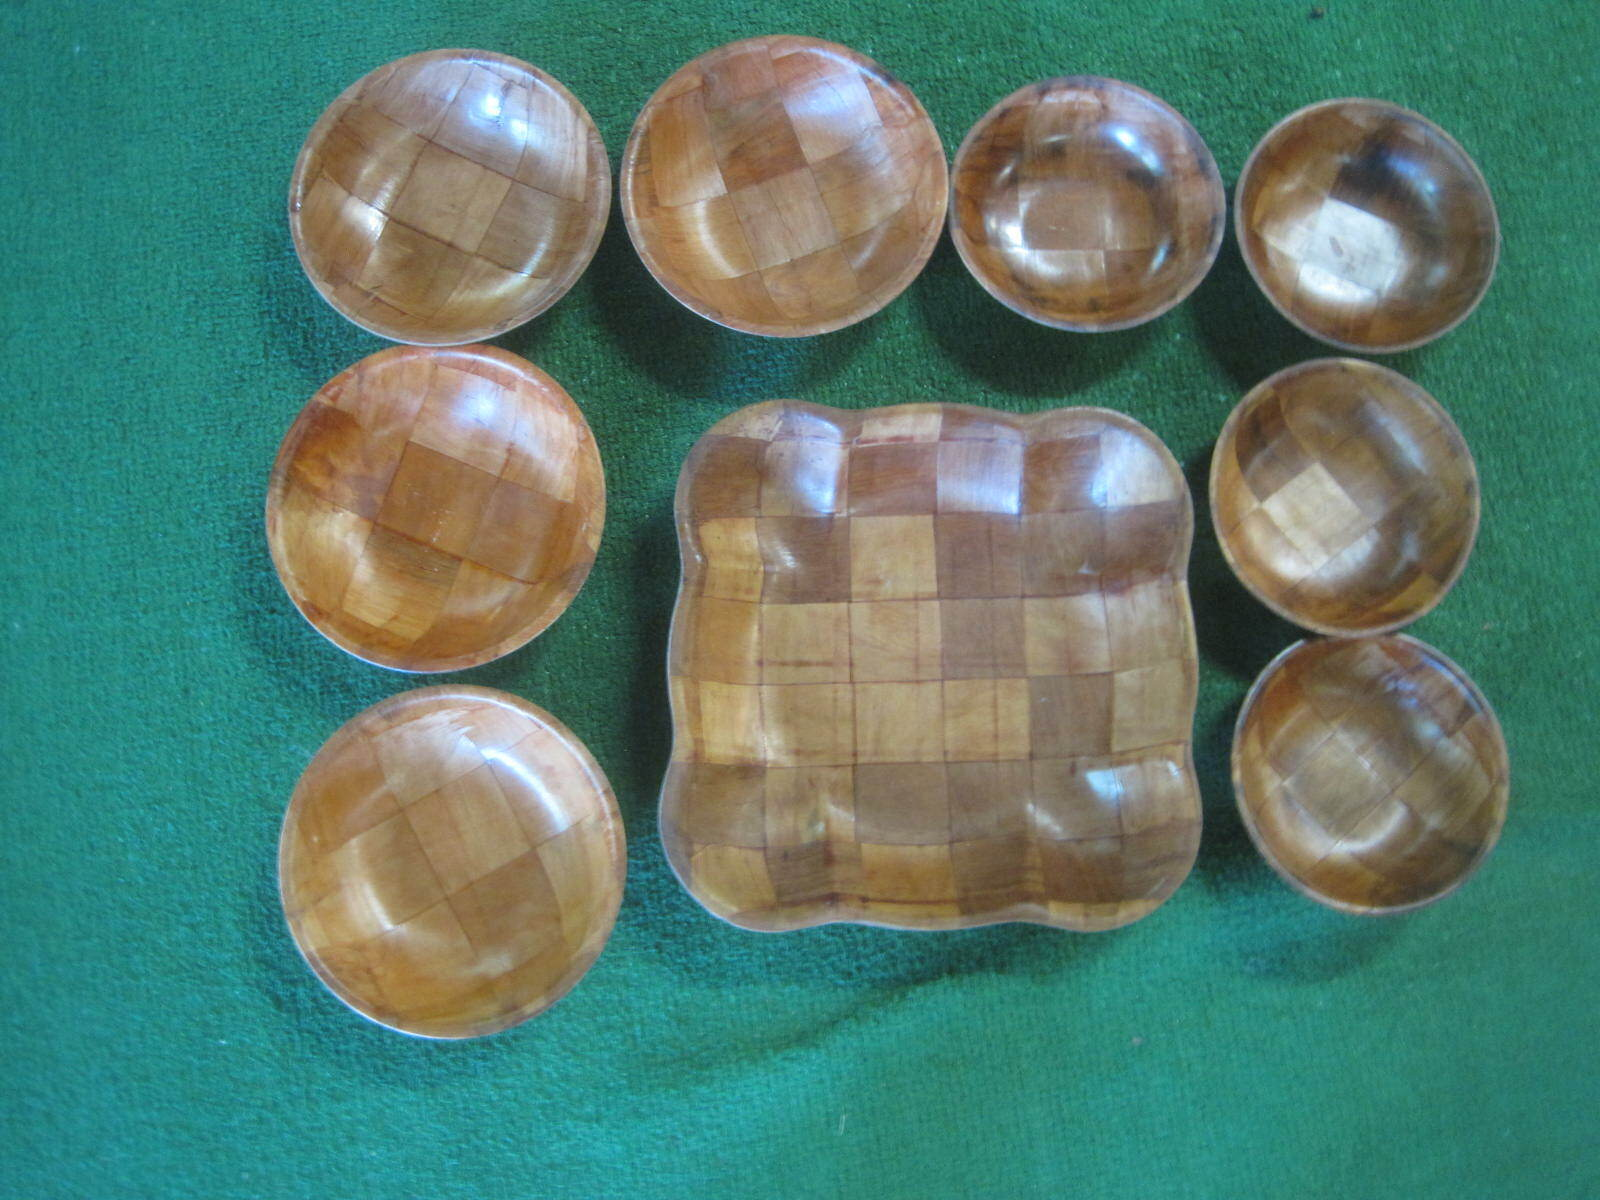 VTG 9-Piece Woven Wood Weavewood Salad Bowl Set SQUARE 11  Bowl, 4 - 7 , 4 - 6